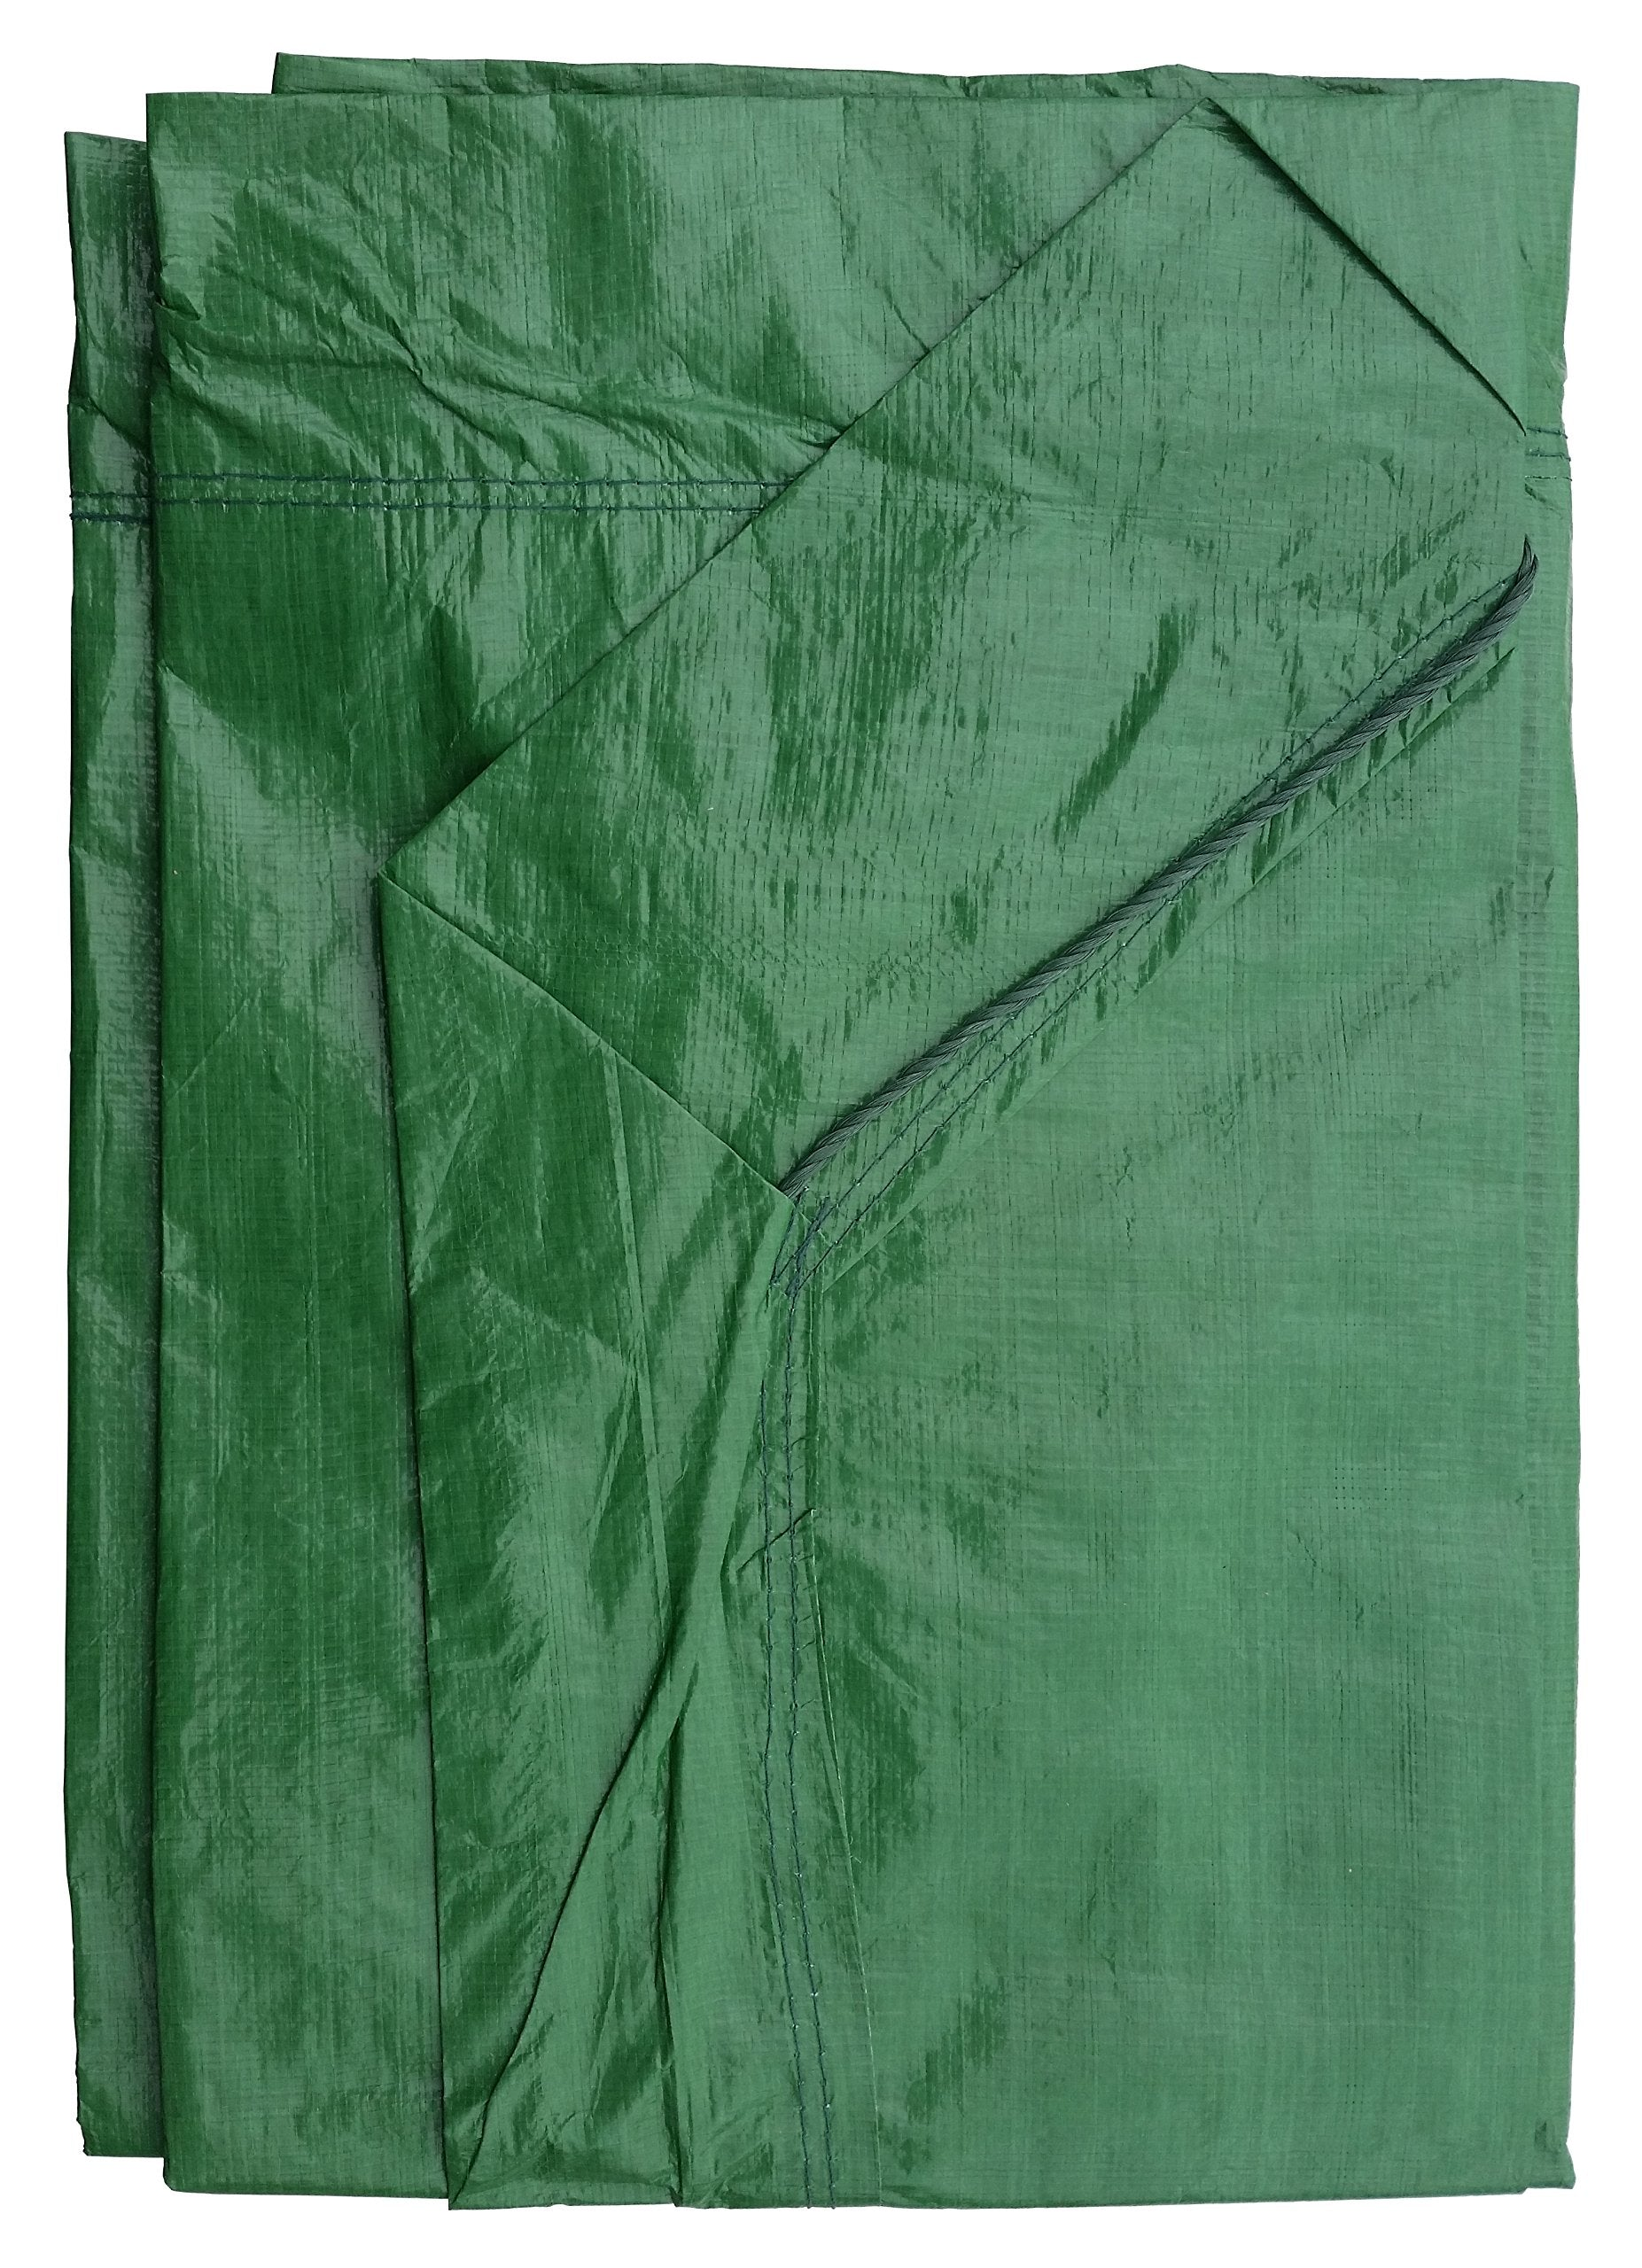 9' x 9' Hunter Green Drawstring Tarp